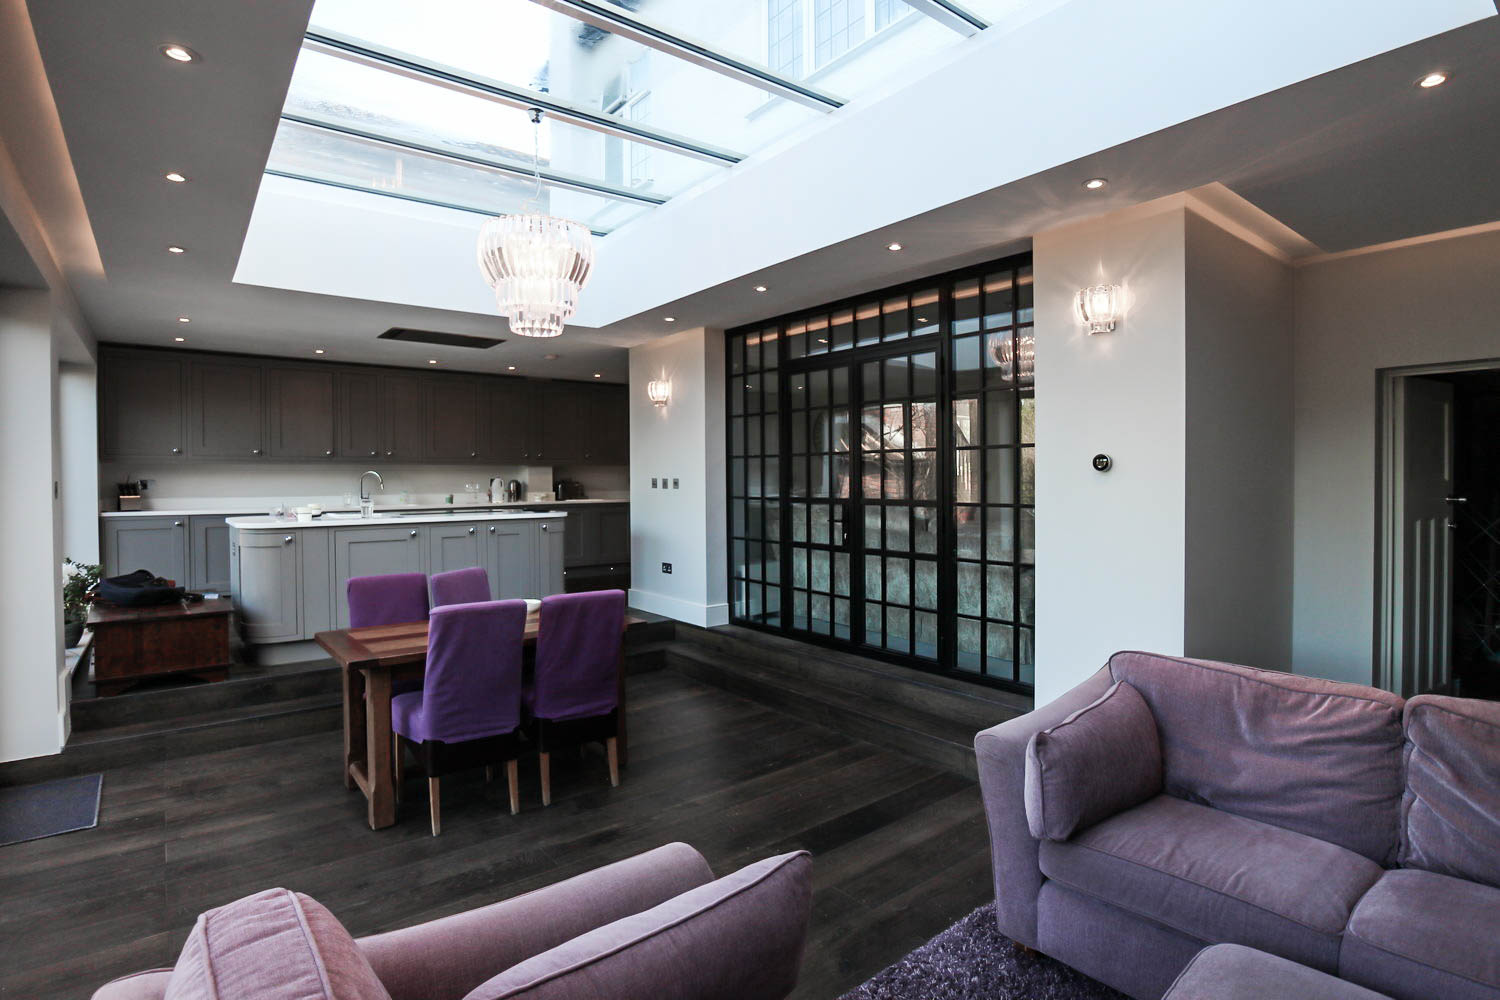 ORC-Sidcup-Open-Plan-Kitchen-Dining-with-Skylight-and-Crittall-Doors.jpg